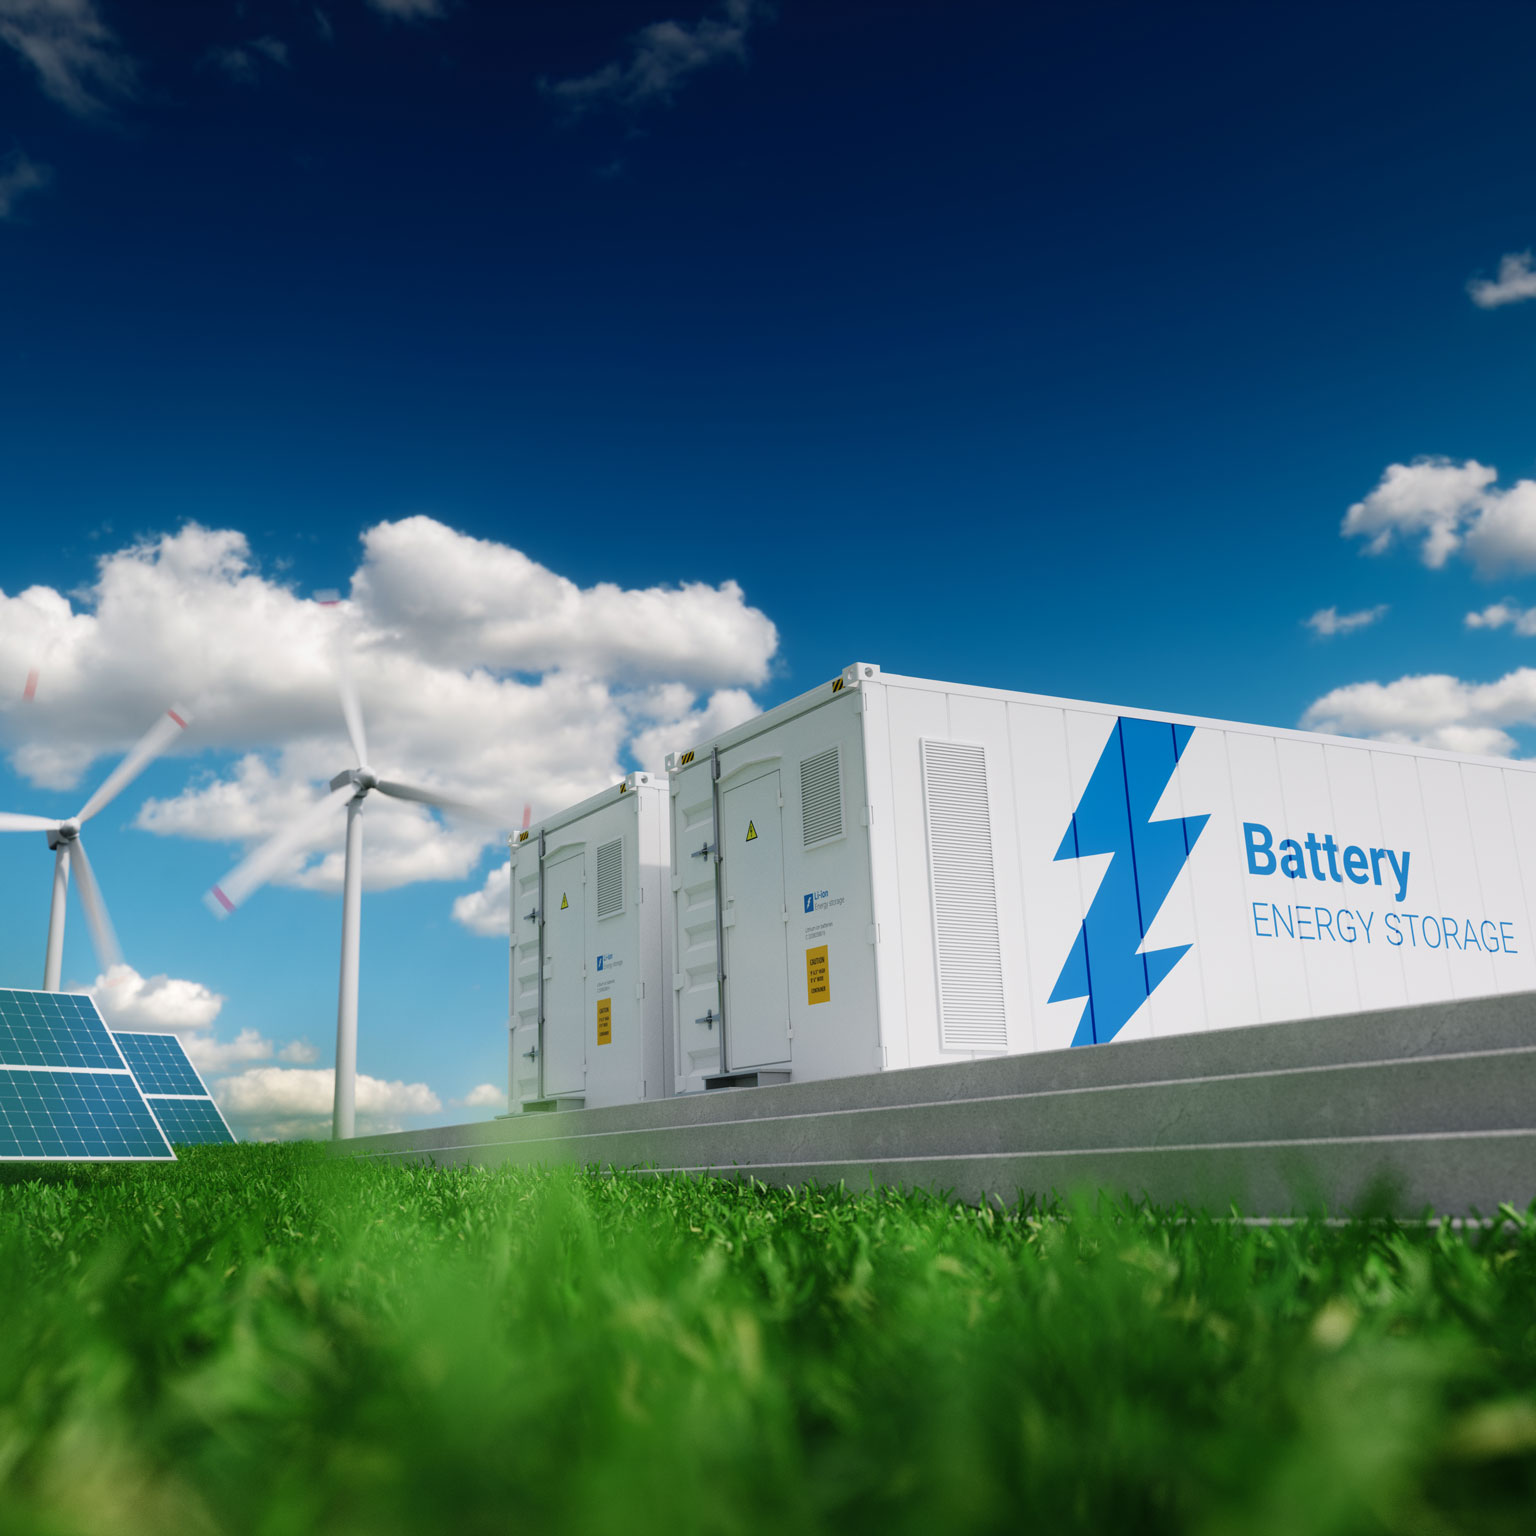 The new rules of competition in energy storage